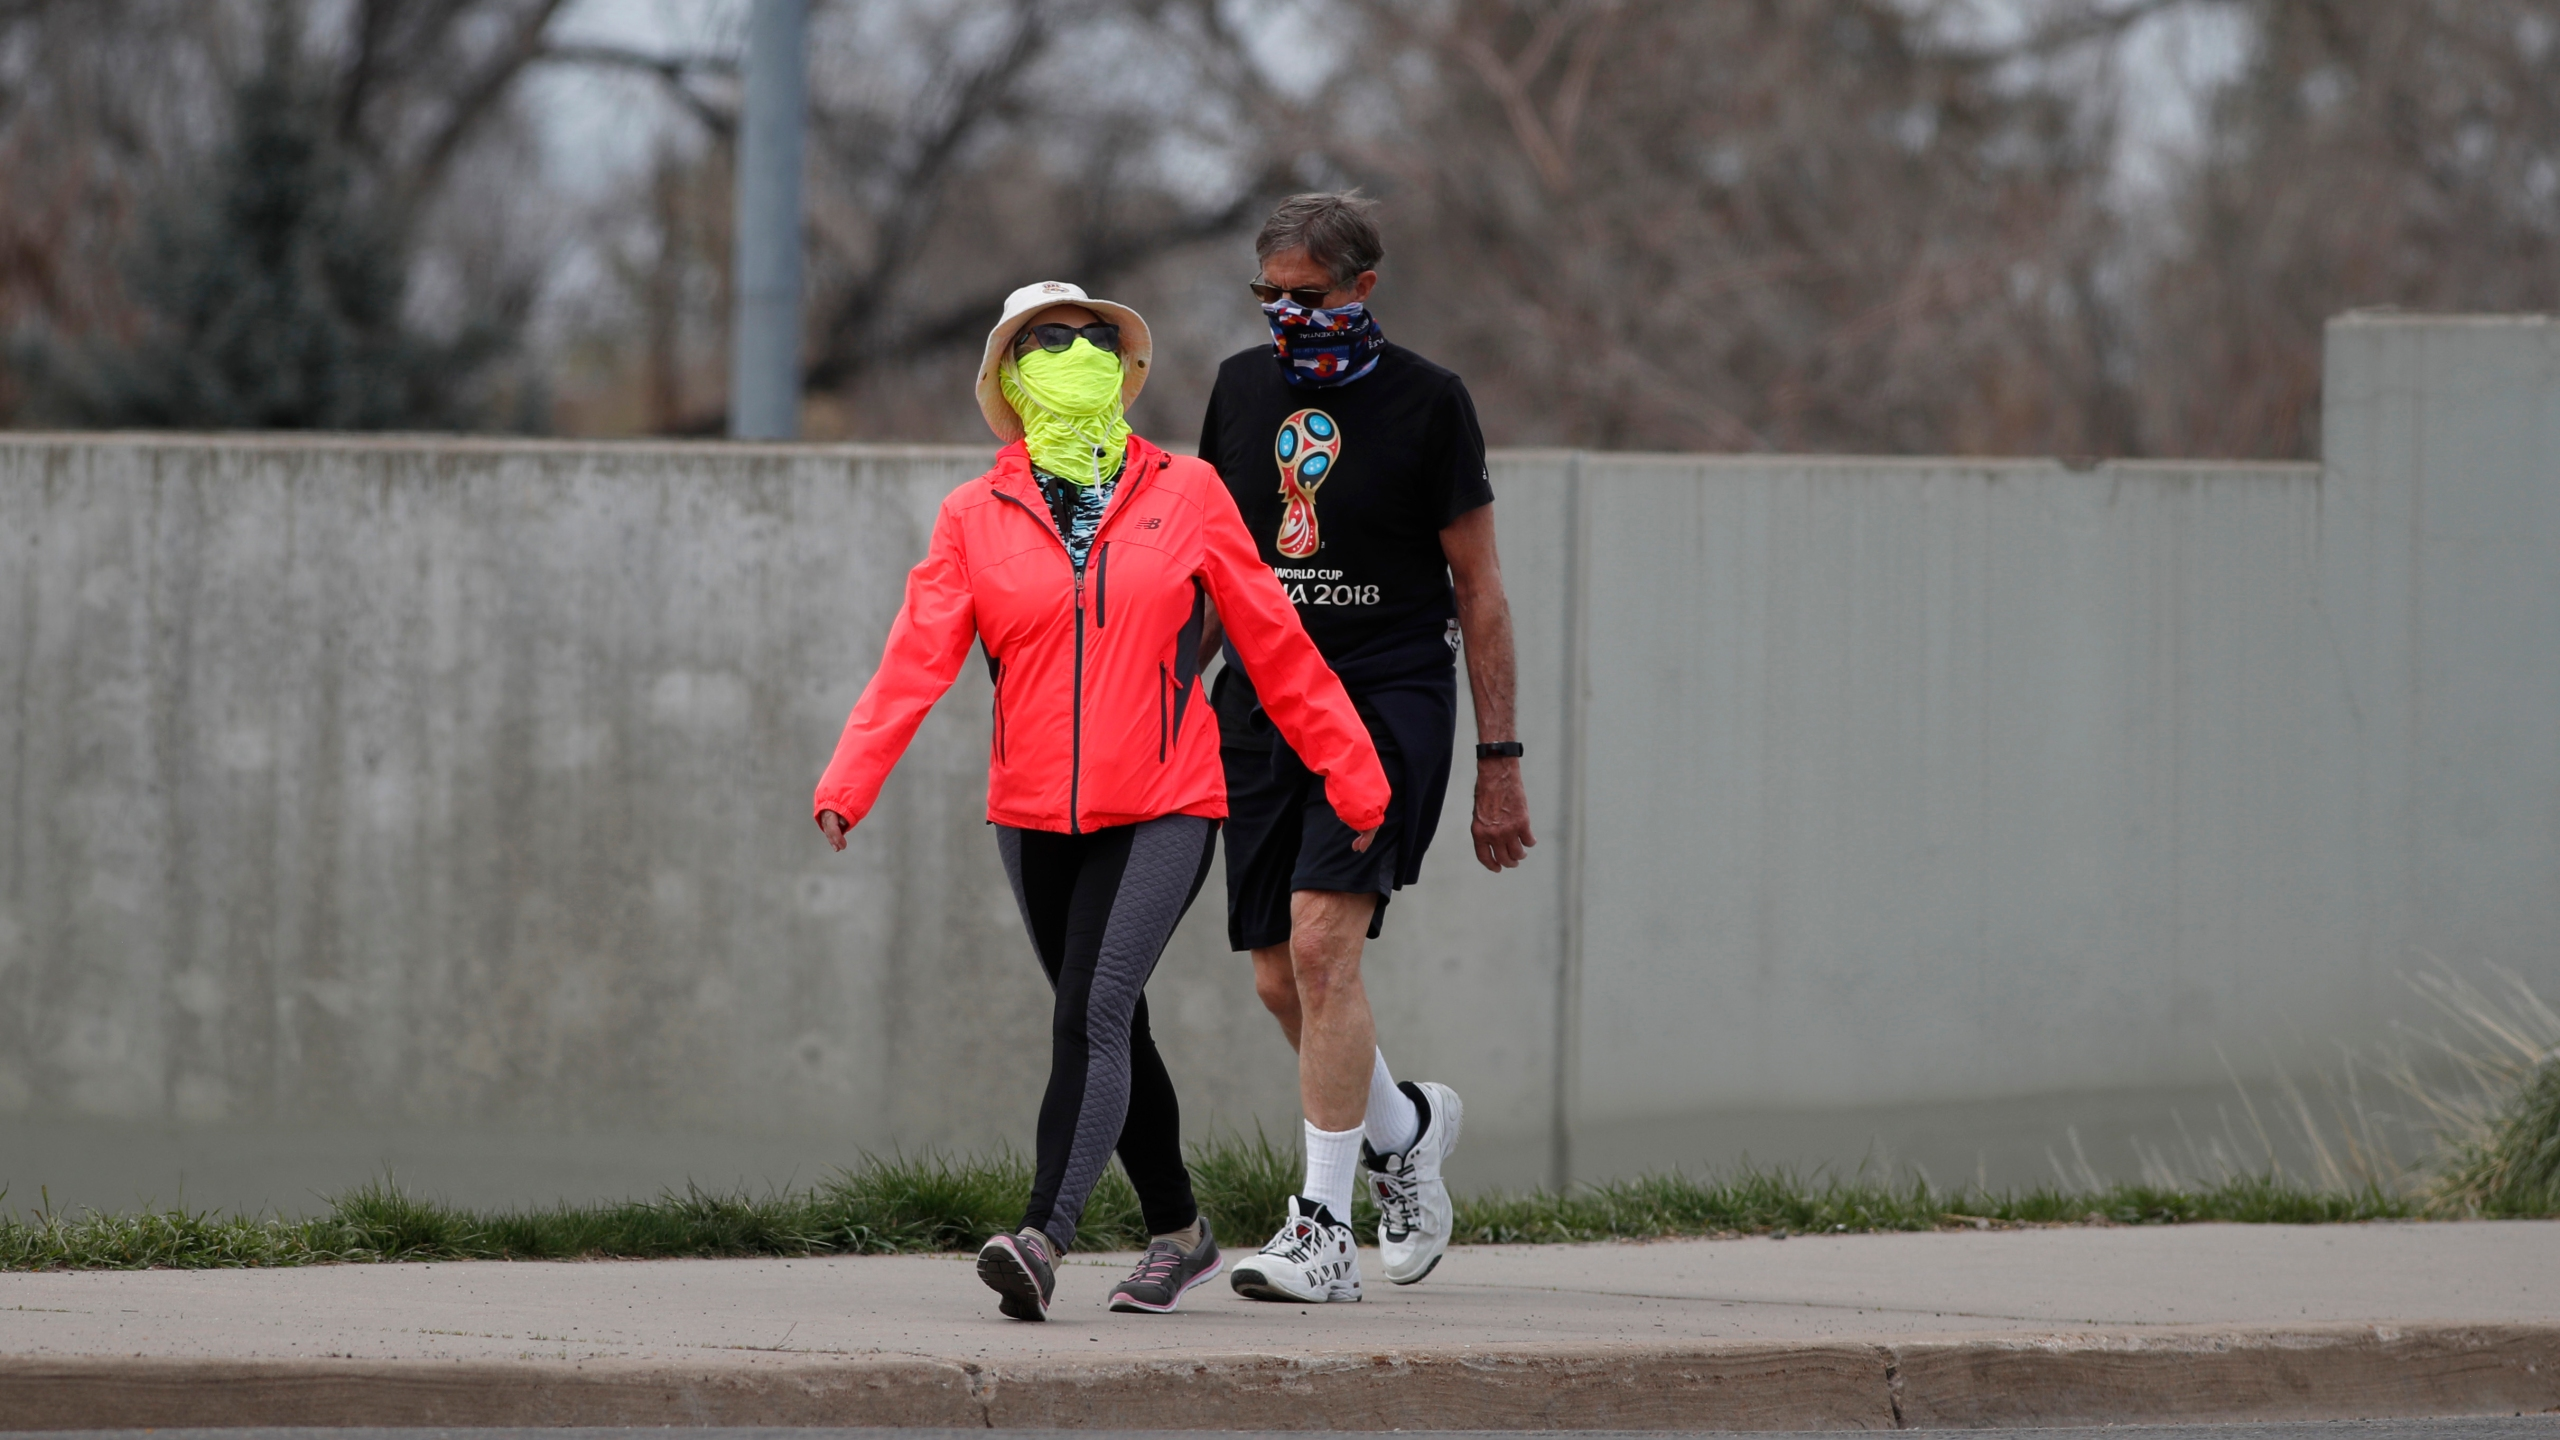 Pedestrians wear masks to comply with a request by Colorado Gov. Jared Polis while they walk along South St. Paul Street as a statewide stay-at-home order remains in effect in an effort to reduce the spread of the new coronavirus, Sunday, April 5, 2020, in Denver. (AP Photo/David Zalubowski)